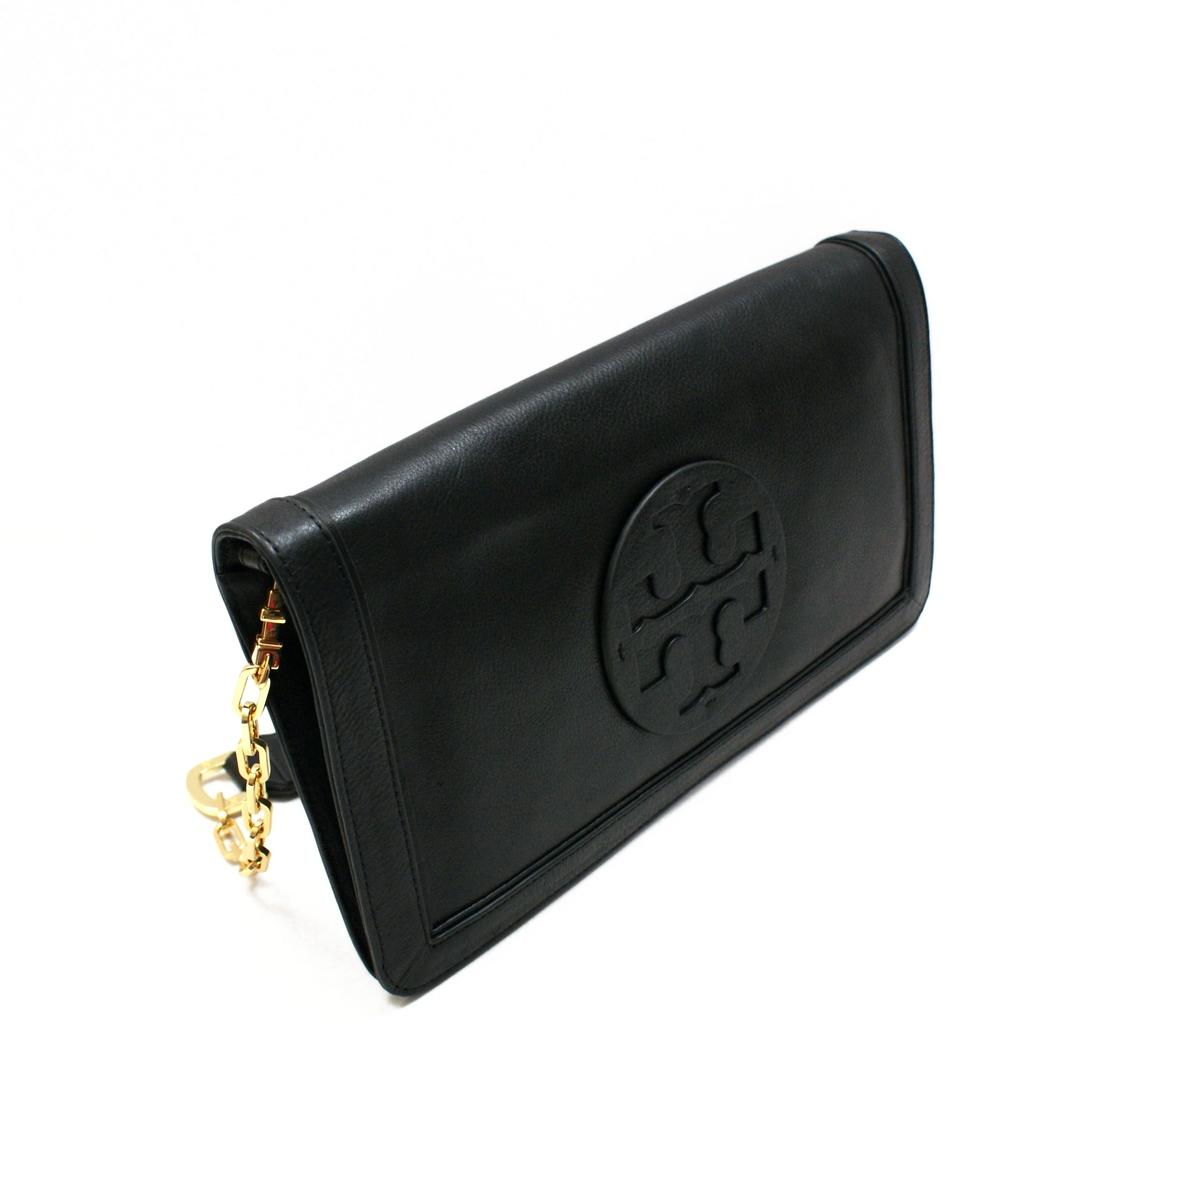 Leather clutch bag, Ipad case made of soft black distressed leather. It could be use as evening or everyday clutch and as Ipad case as well. The bag closes through metal ykk zipper and colorful bag charm is added as finishing touch.